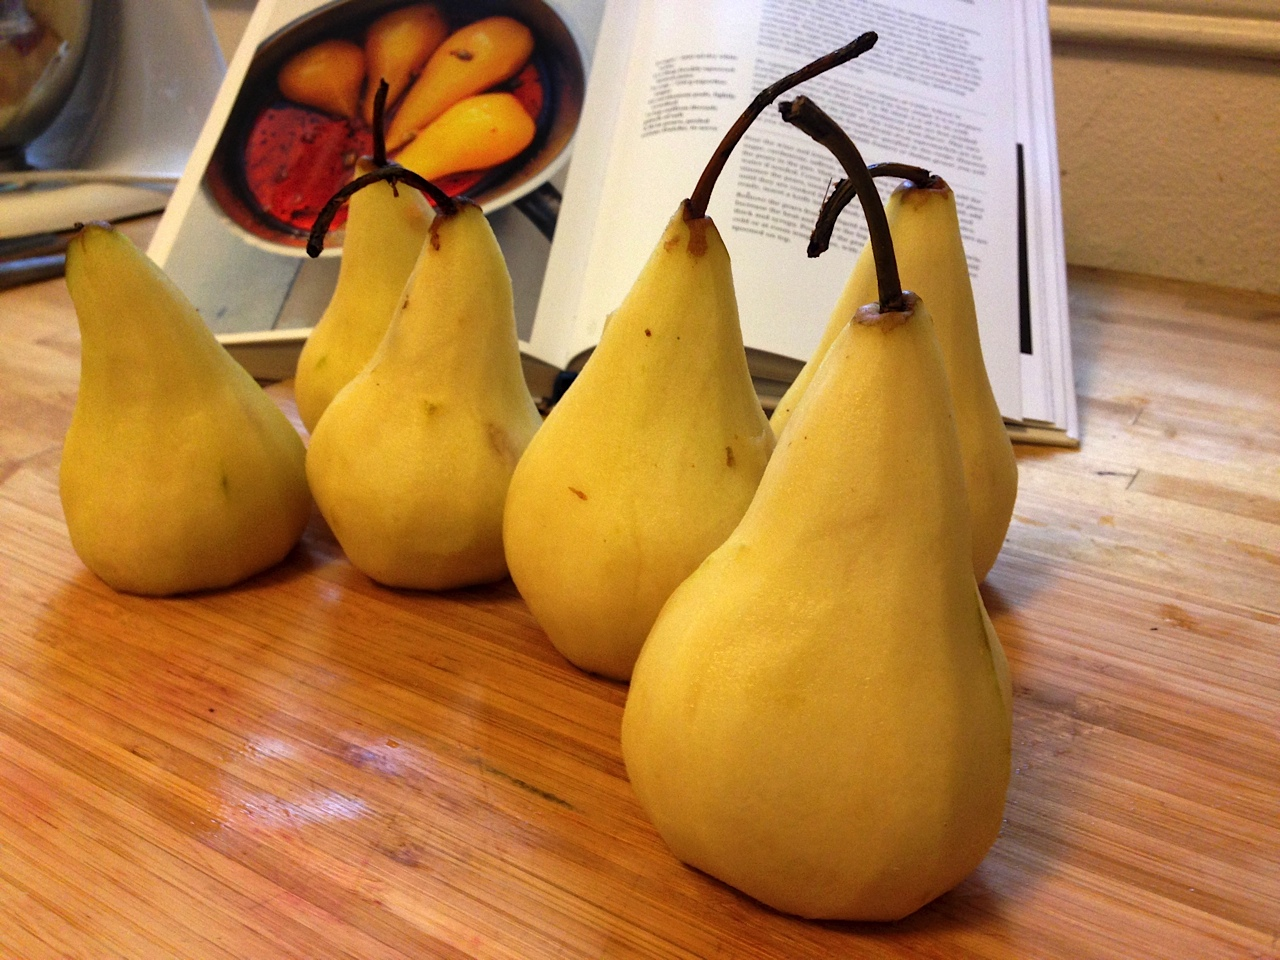 peeled pears for poaching